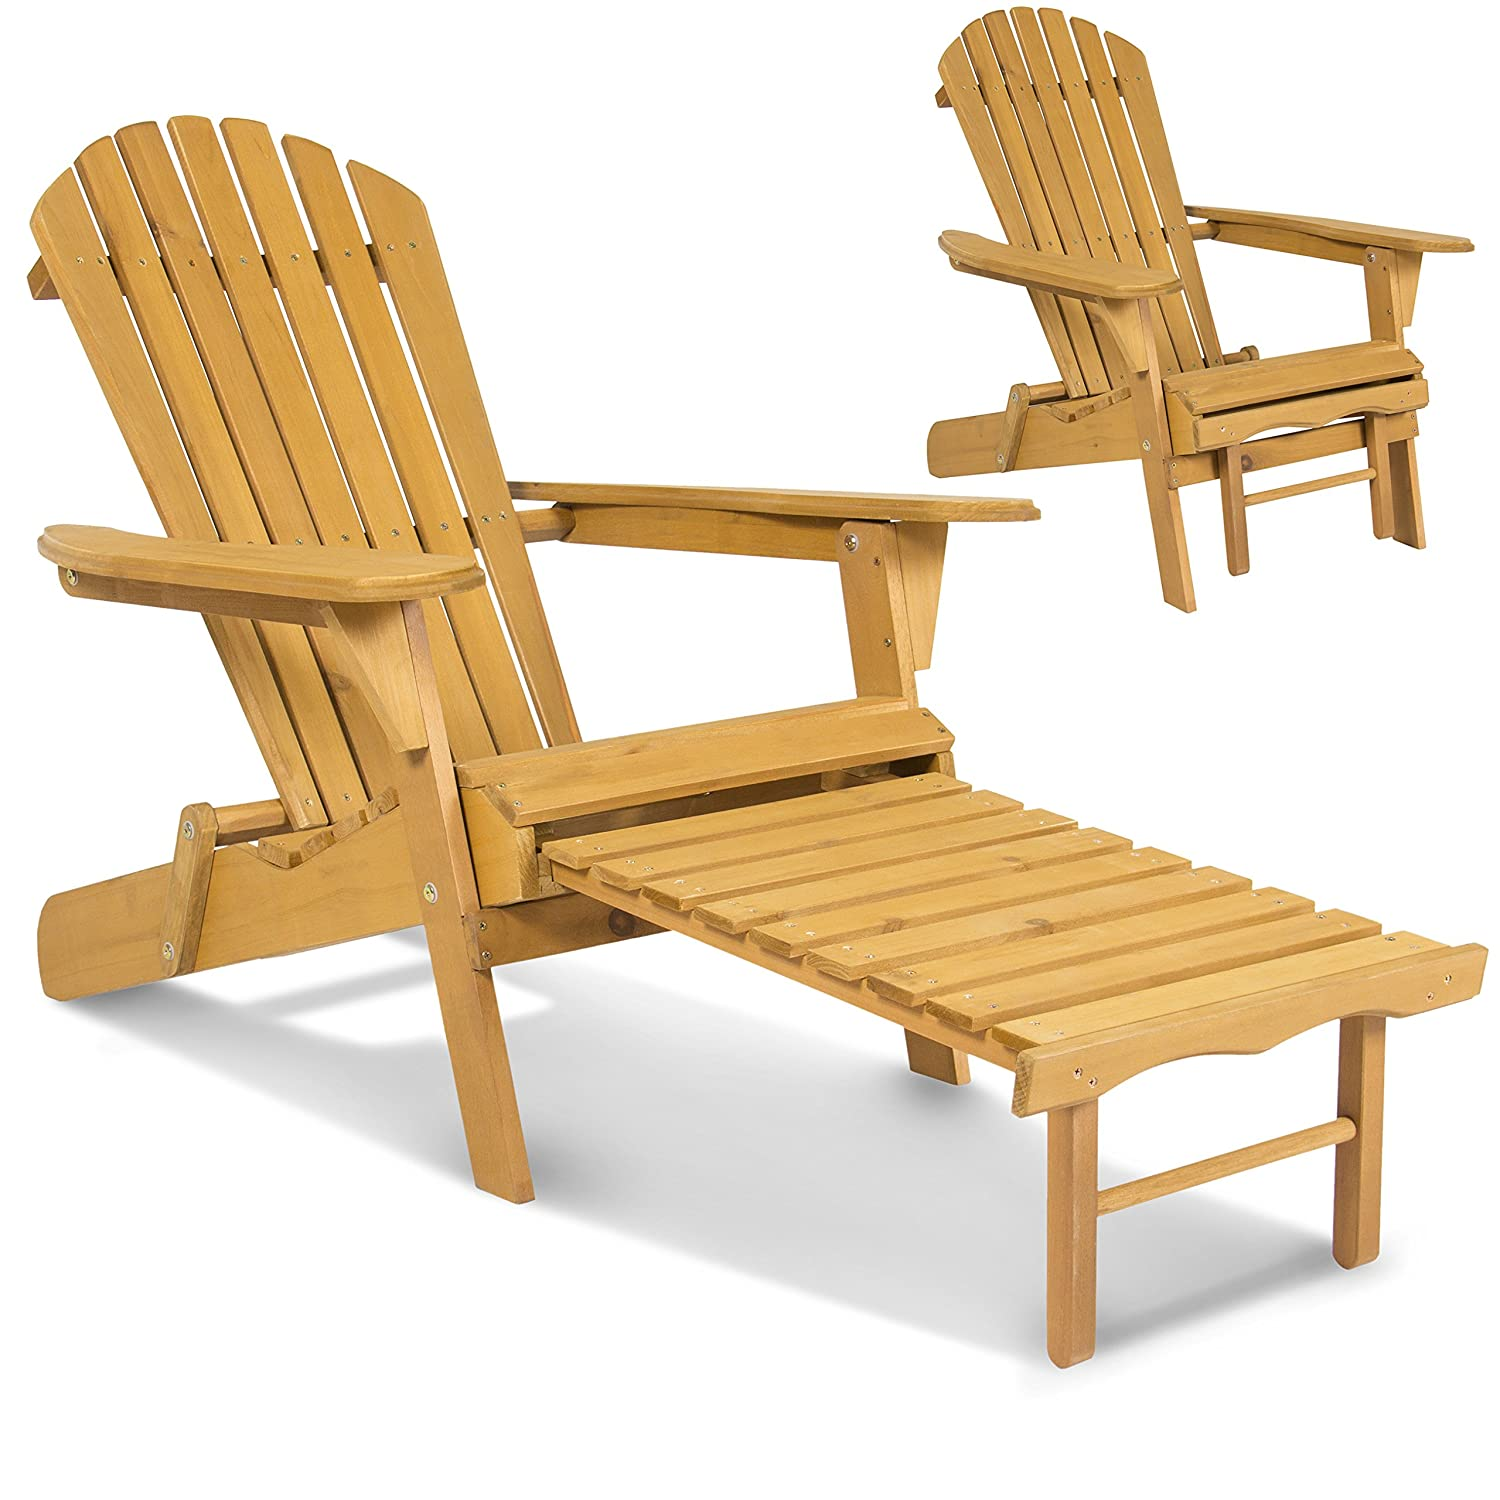 Good Amazon.com : Best Choice Products SKY2254 Outdoor Patio Deck Garden  Foldable Adirondack Wood Chair With Pull Out Ottoman : Garden U0026 Outdoor